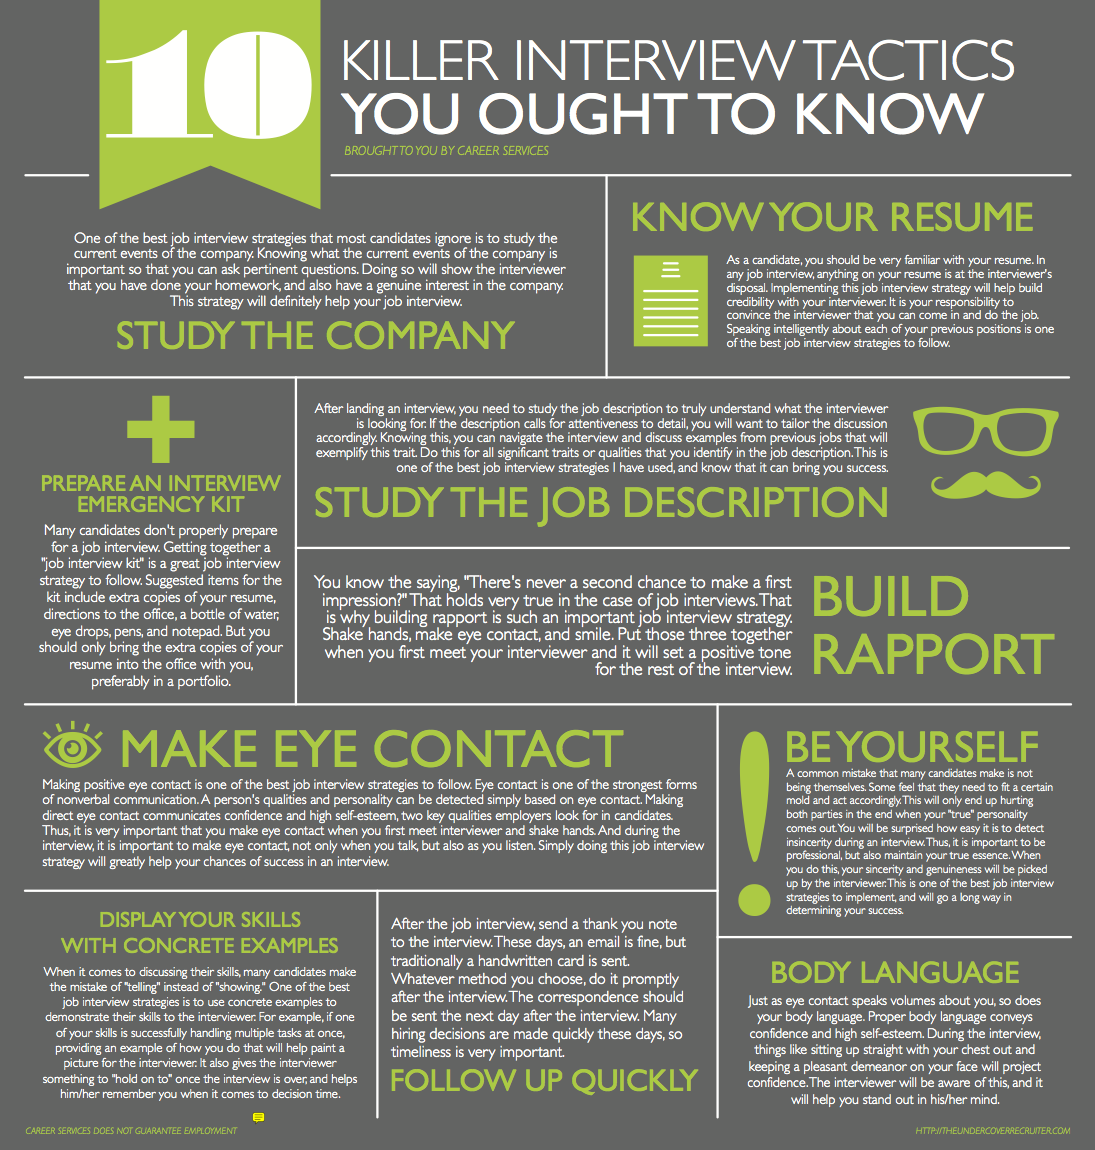 Killer Interview Tactics You Ought to Know Repinned by Chesapeake ...